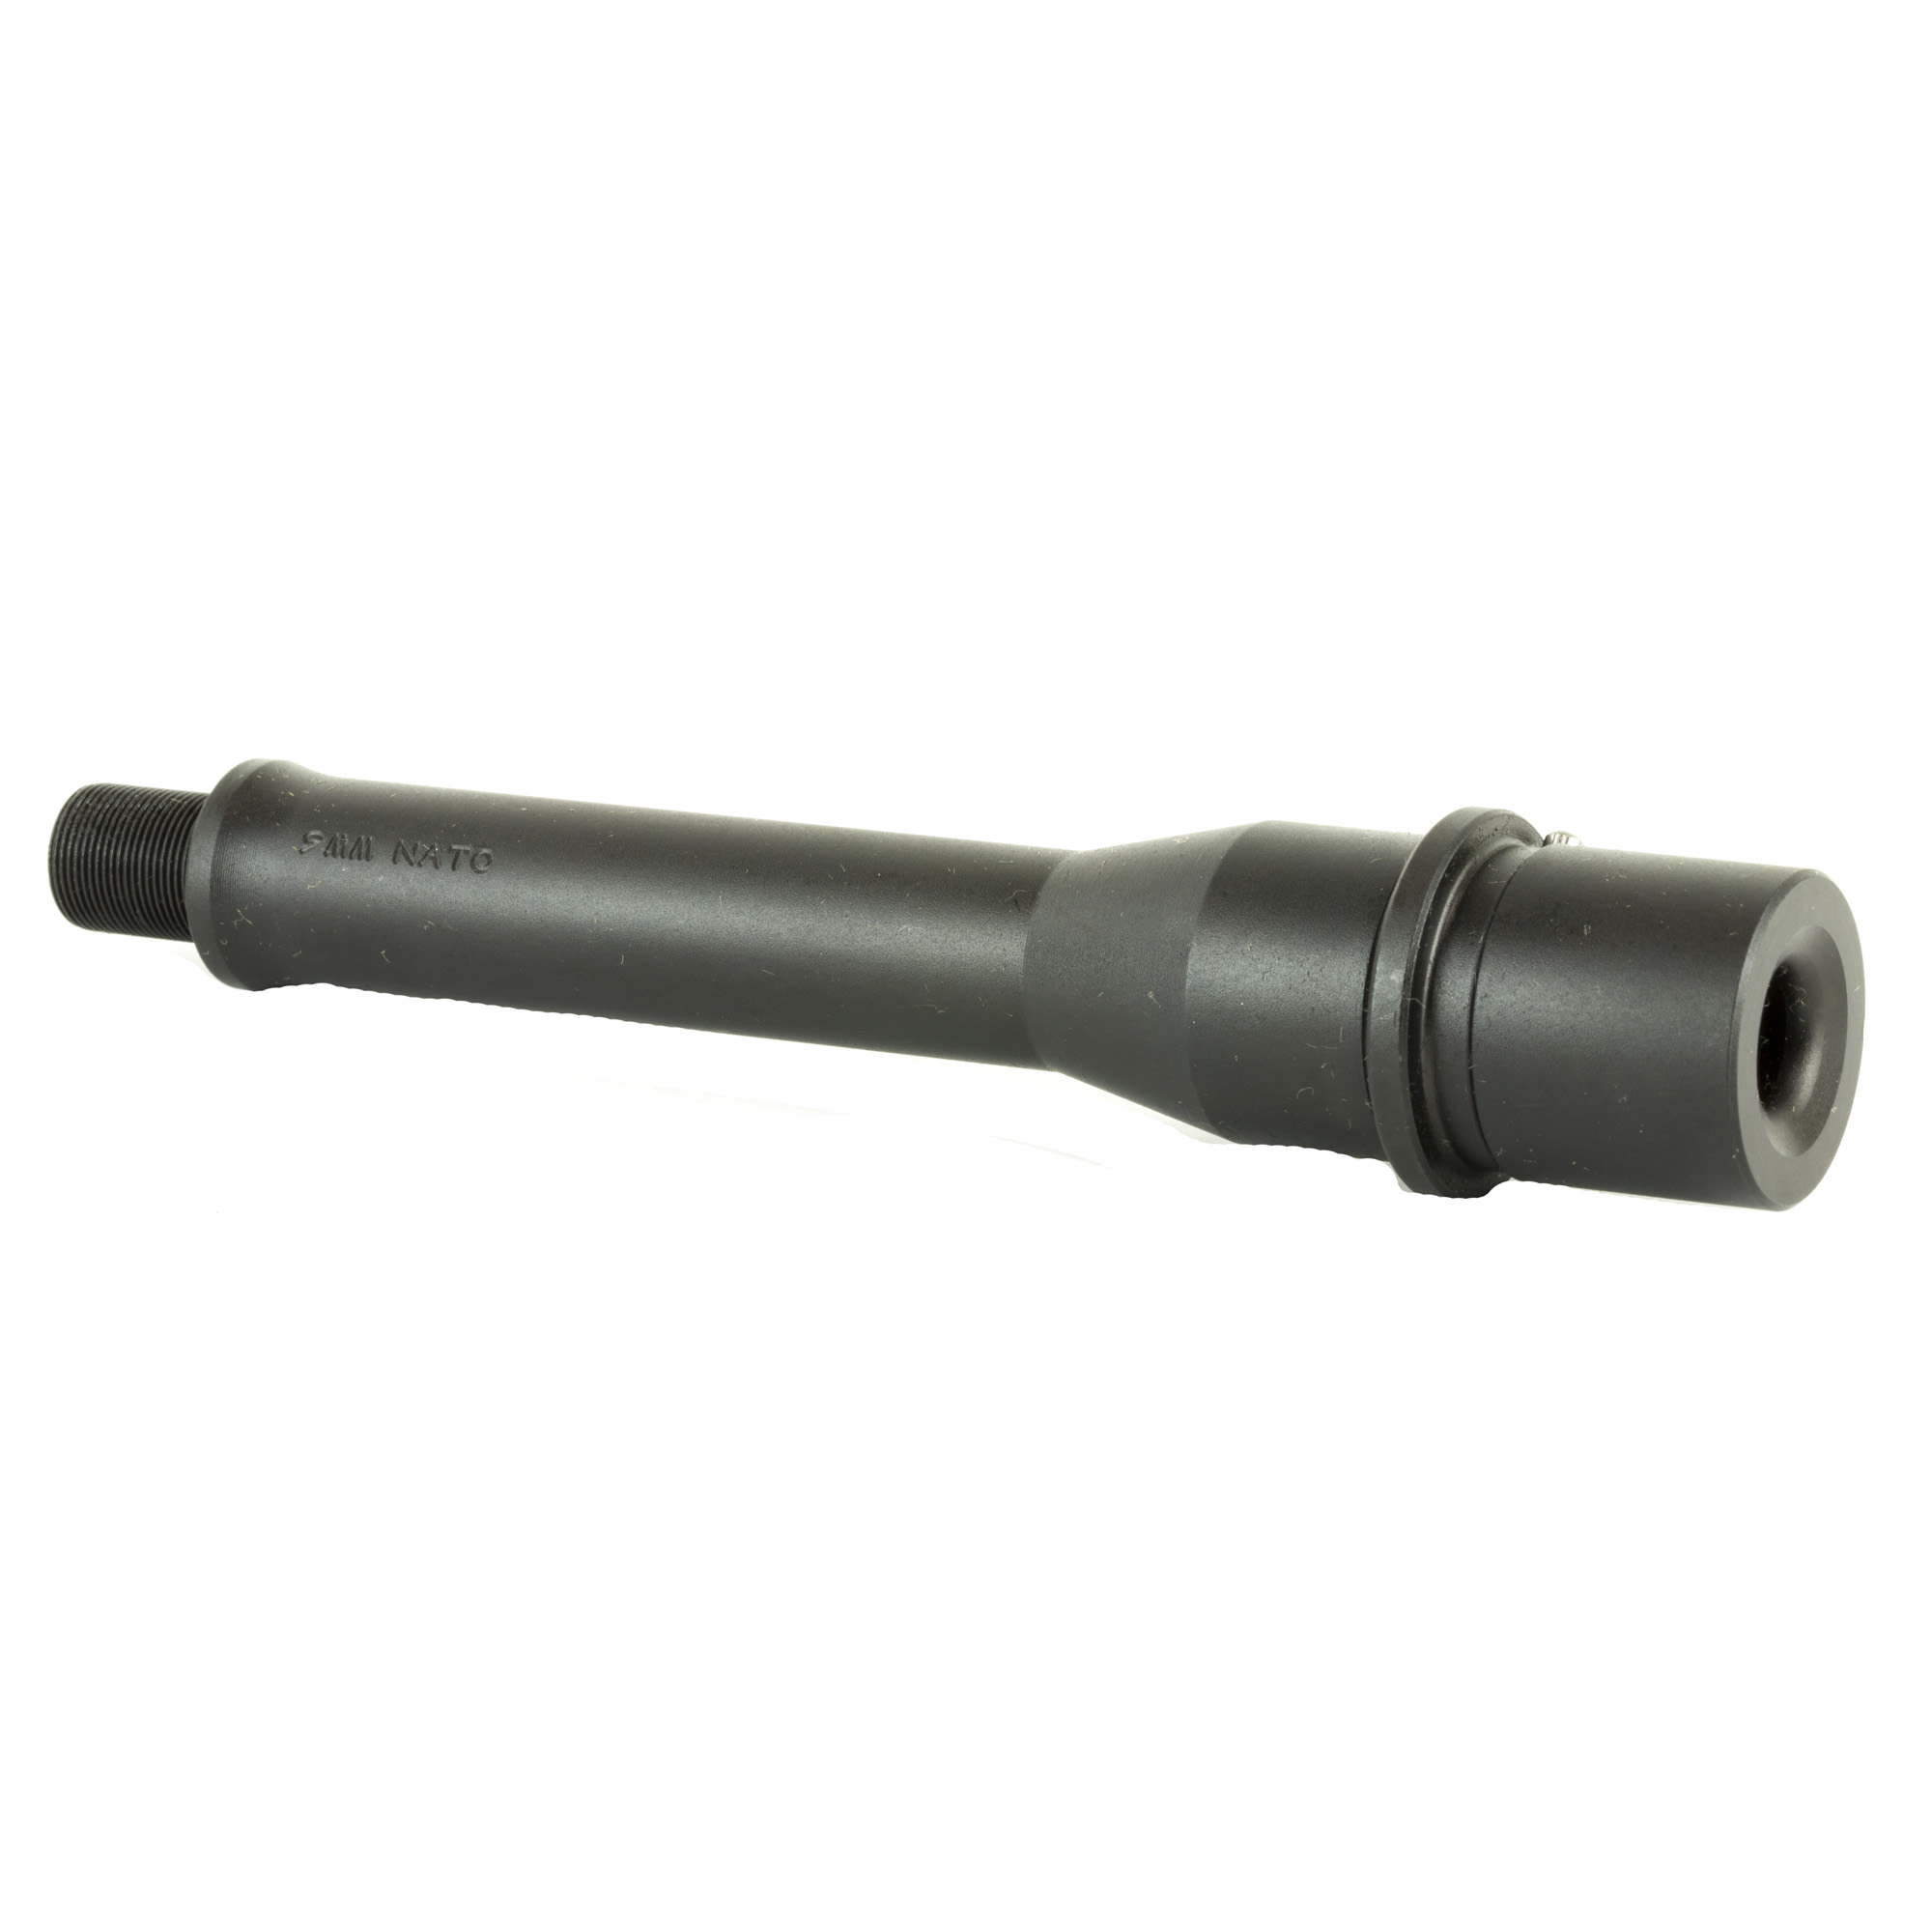 Angstadt Arms 6″ 9mm AR-15 Barrel - MSR Arms